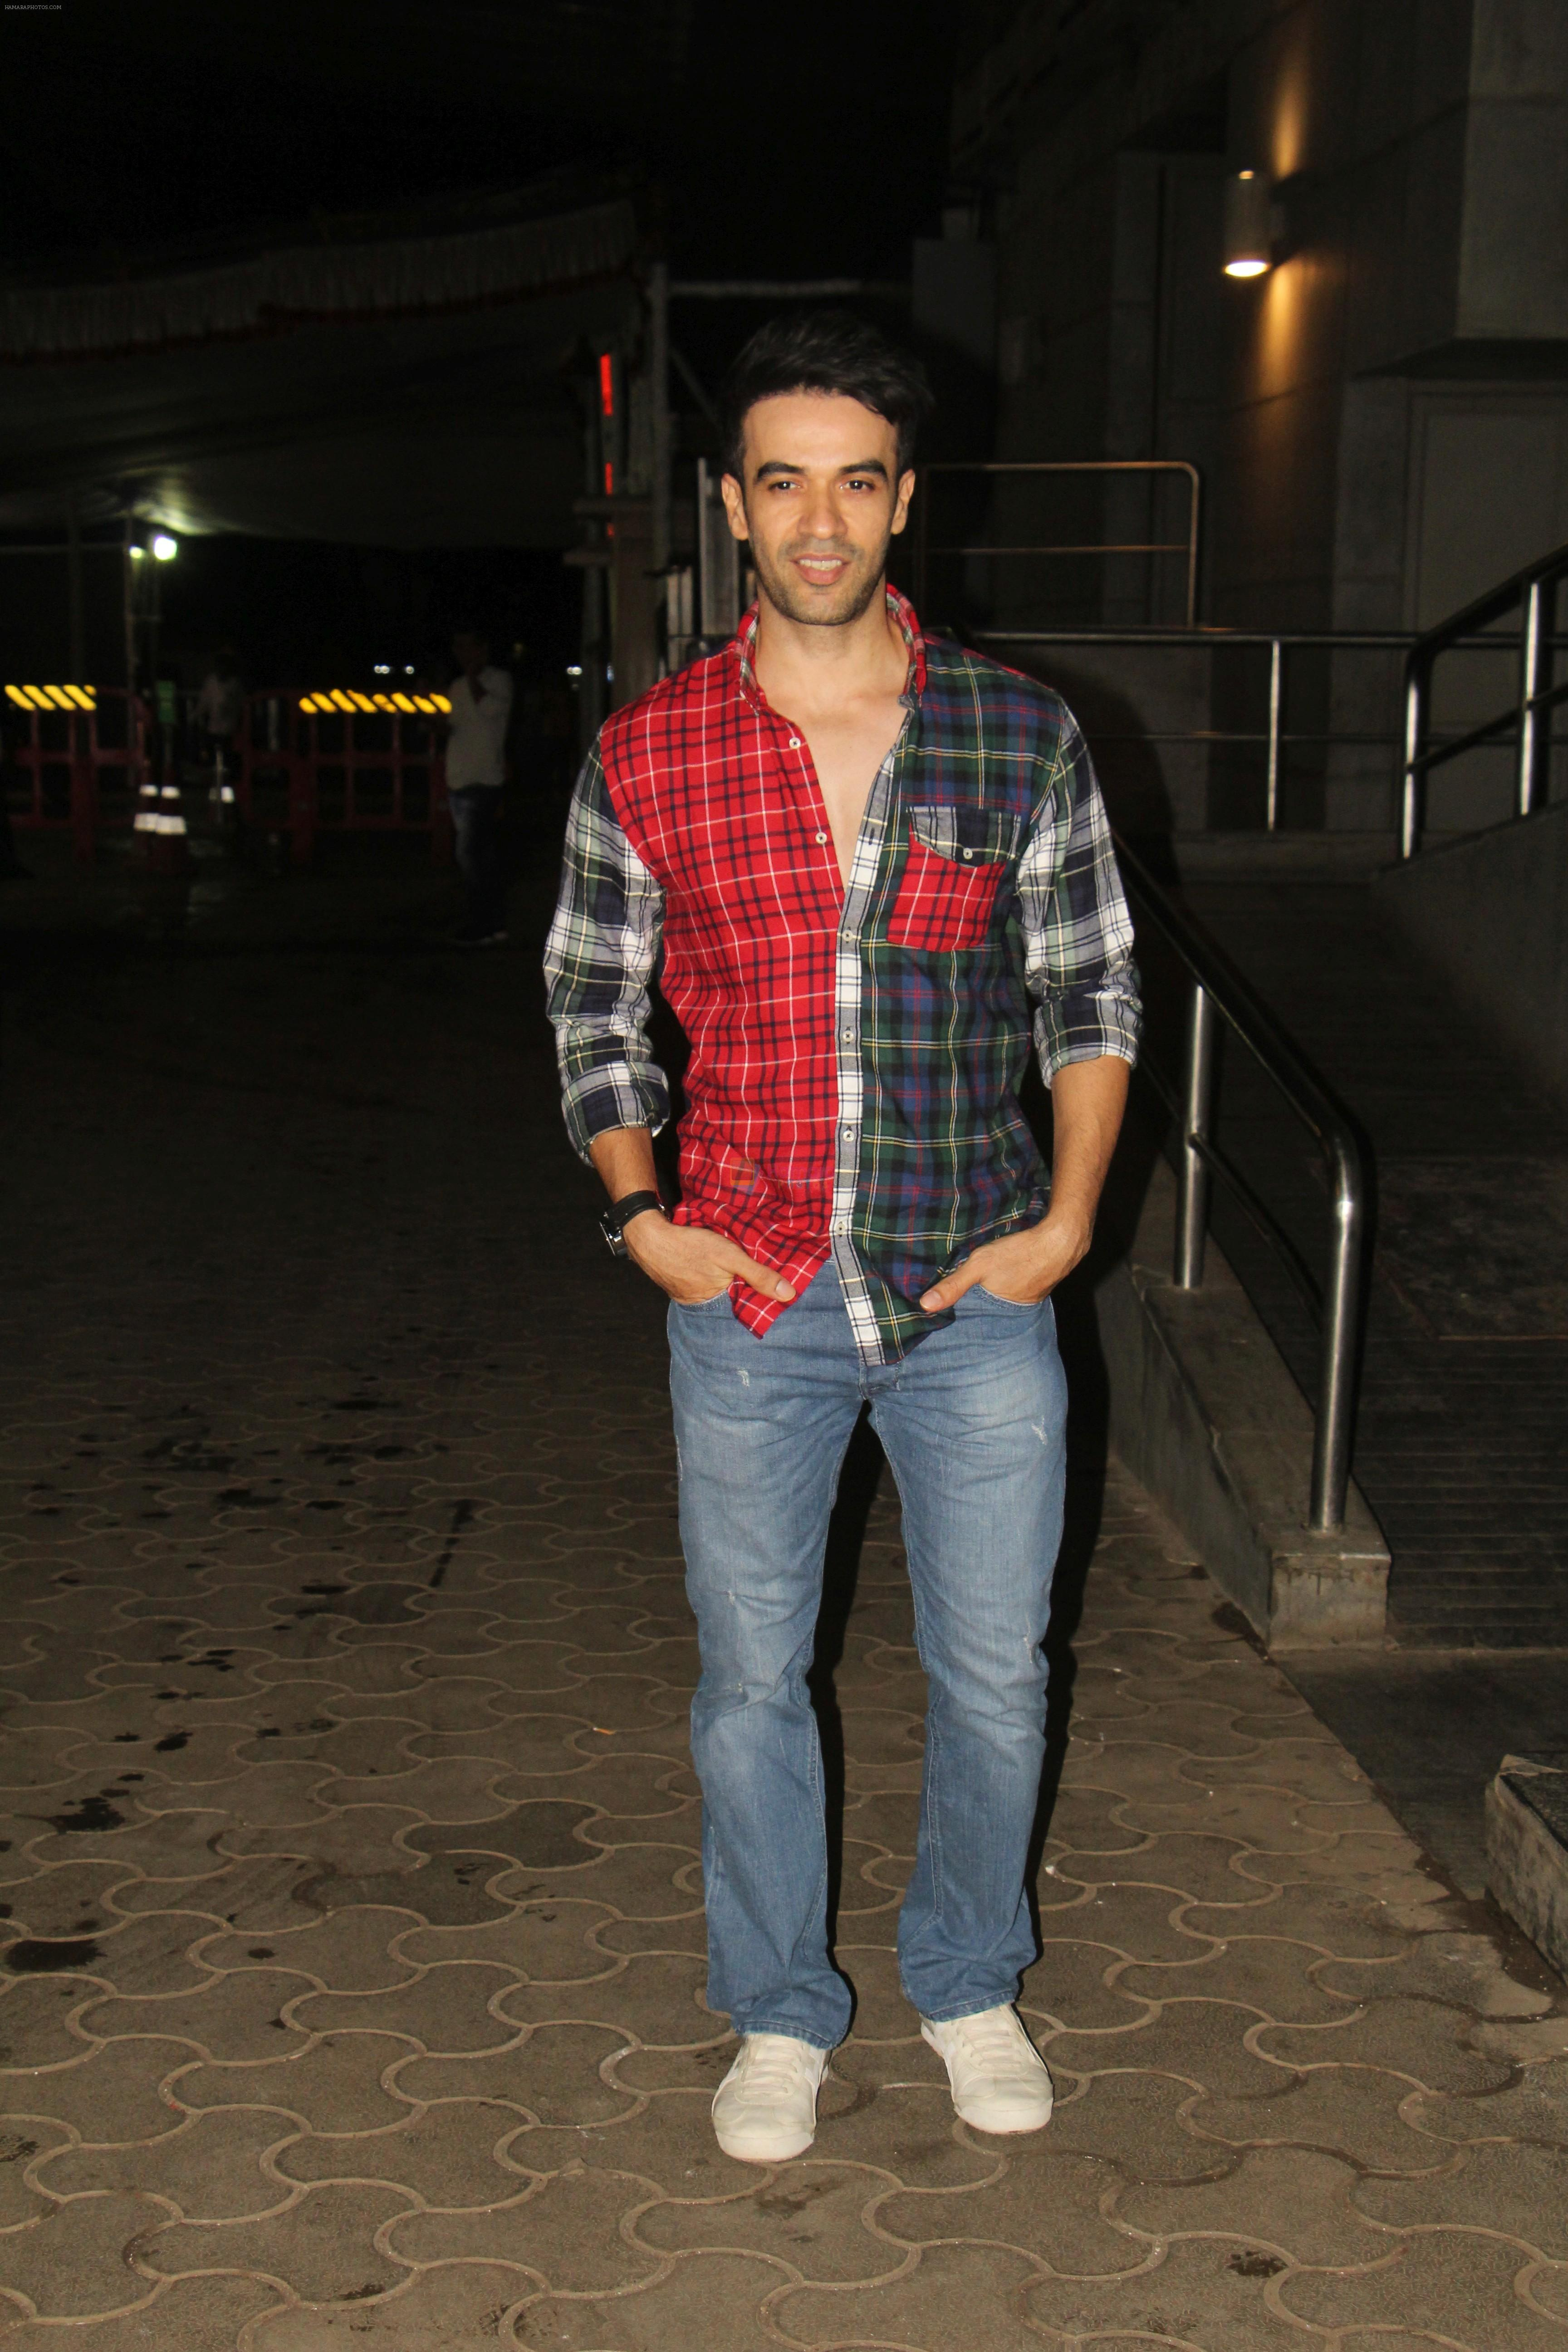 Punit Malhotra at the Screening of film Khandaani Shafakhana at pvr icon in andheri on 1st Aug 2019